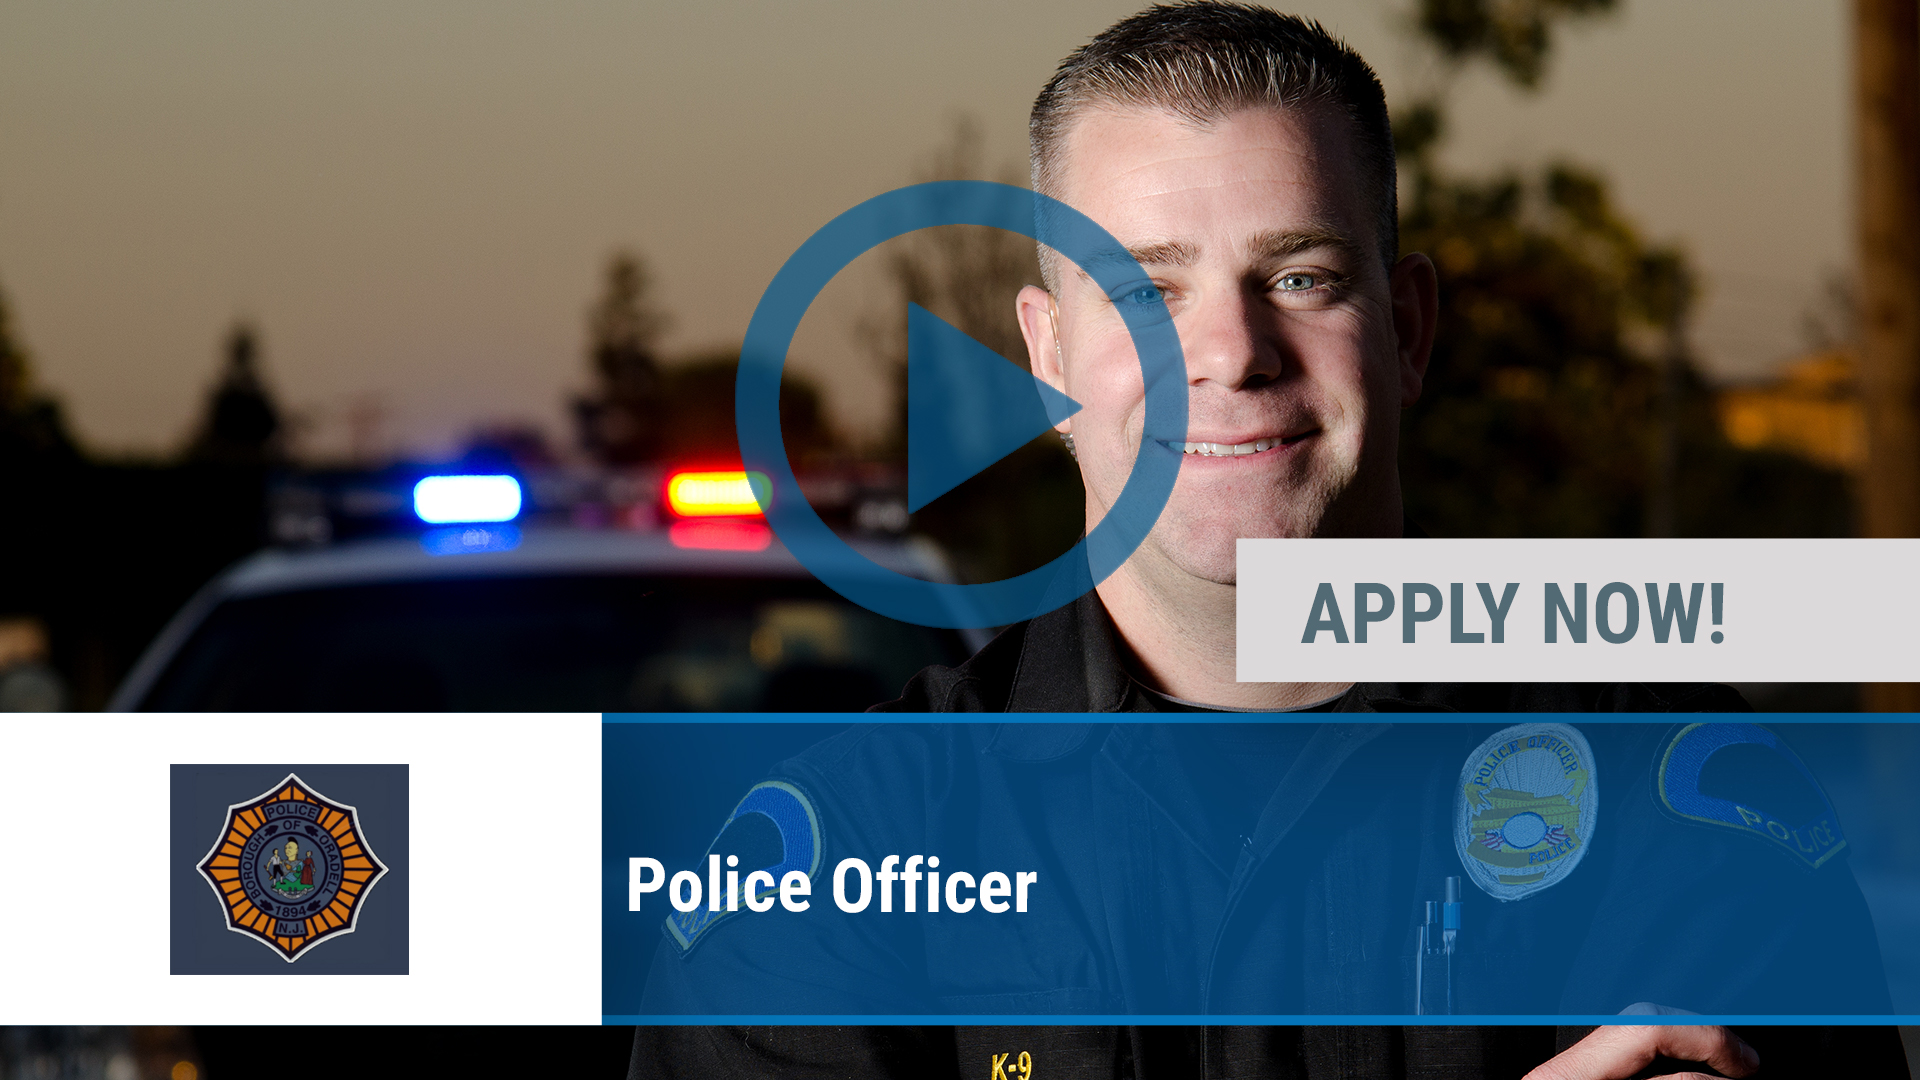 Watch our careers video for available job opening Police Officer in Oradell, NJ